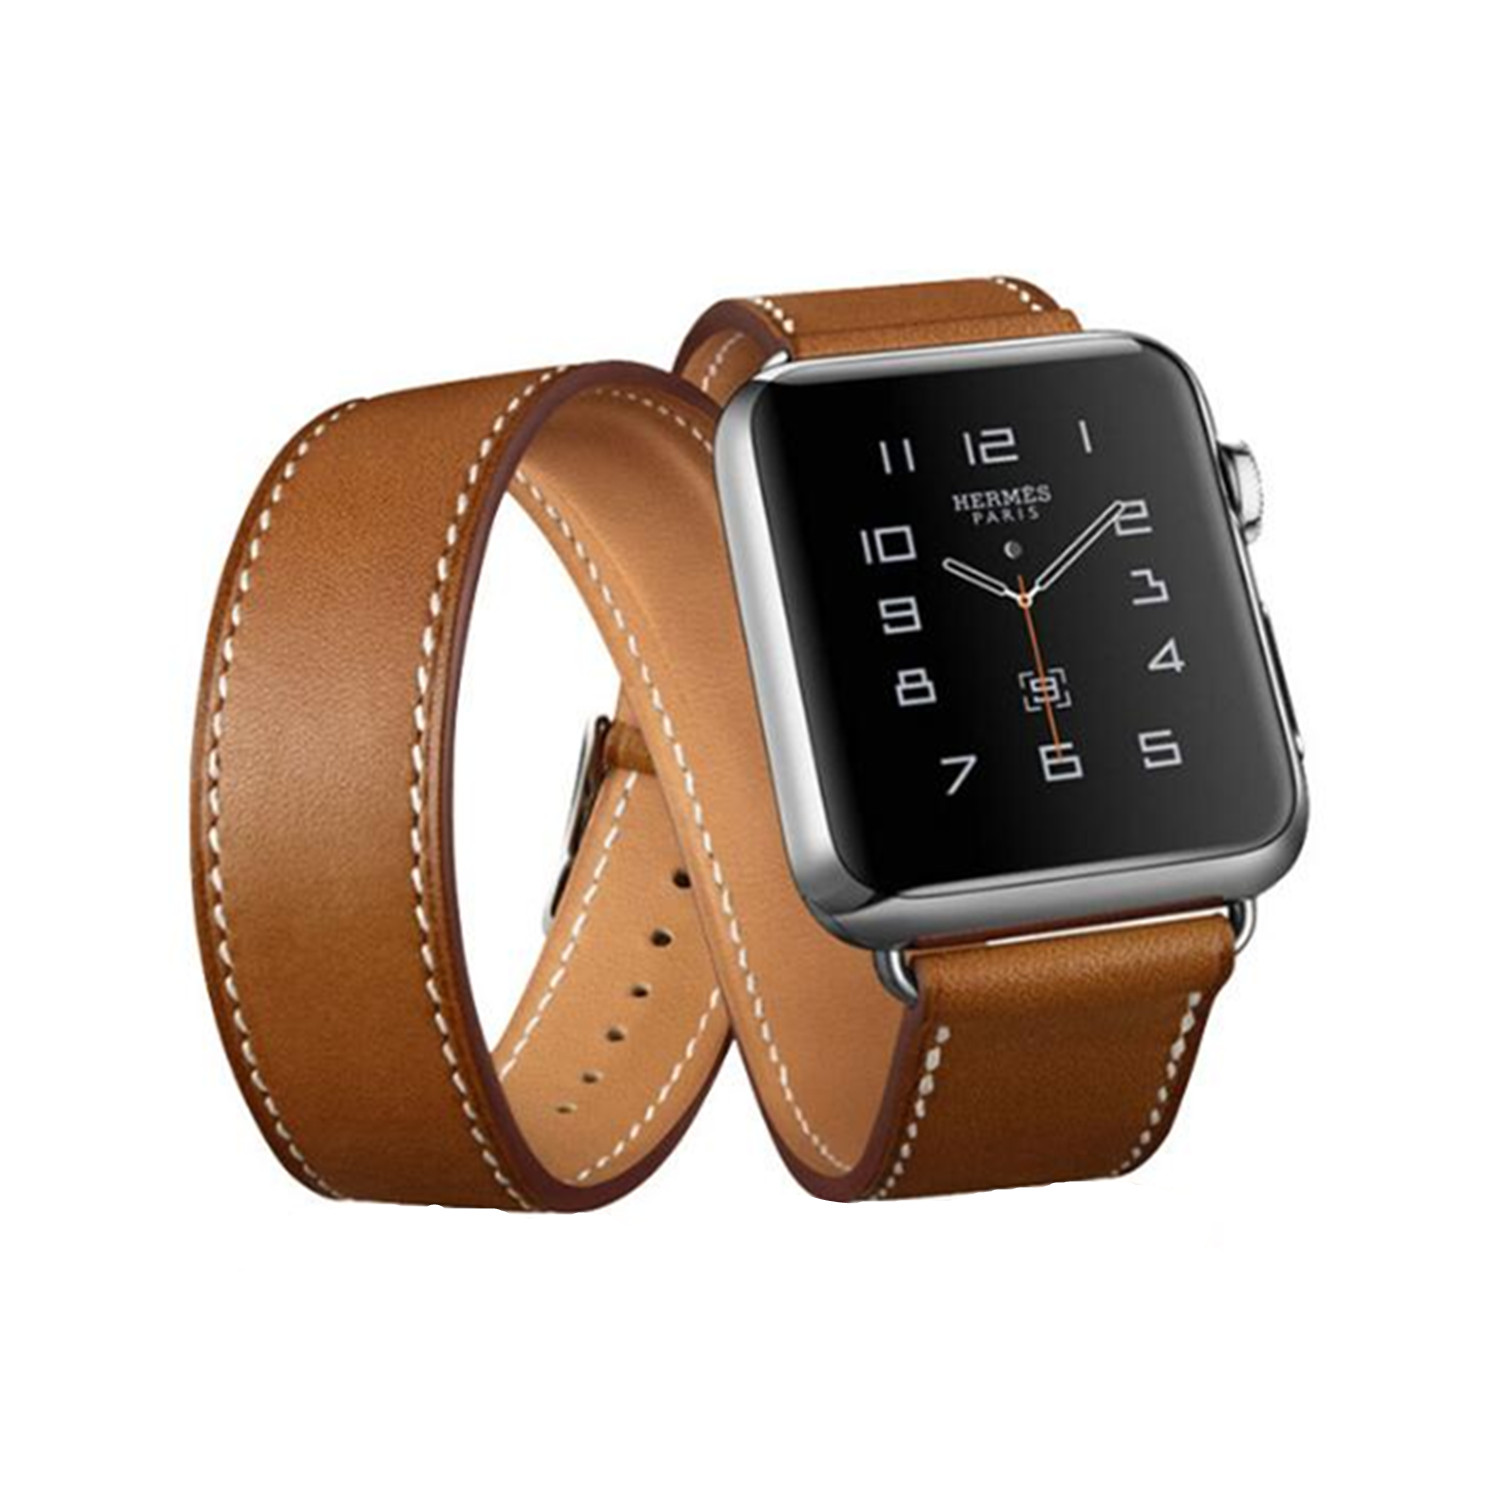 online buy whole hermes watch from hermes watch 3 models genuine leather wrist bracelet watchband for hermes apple watch band 38mm 42mm watch strap